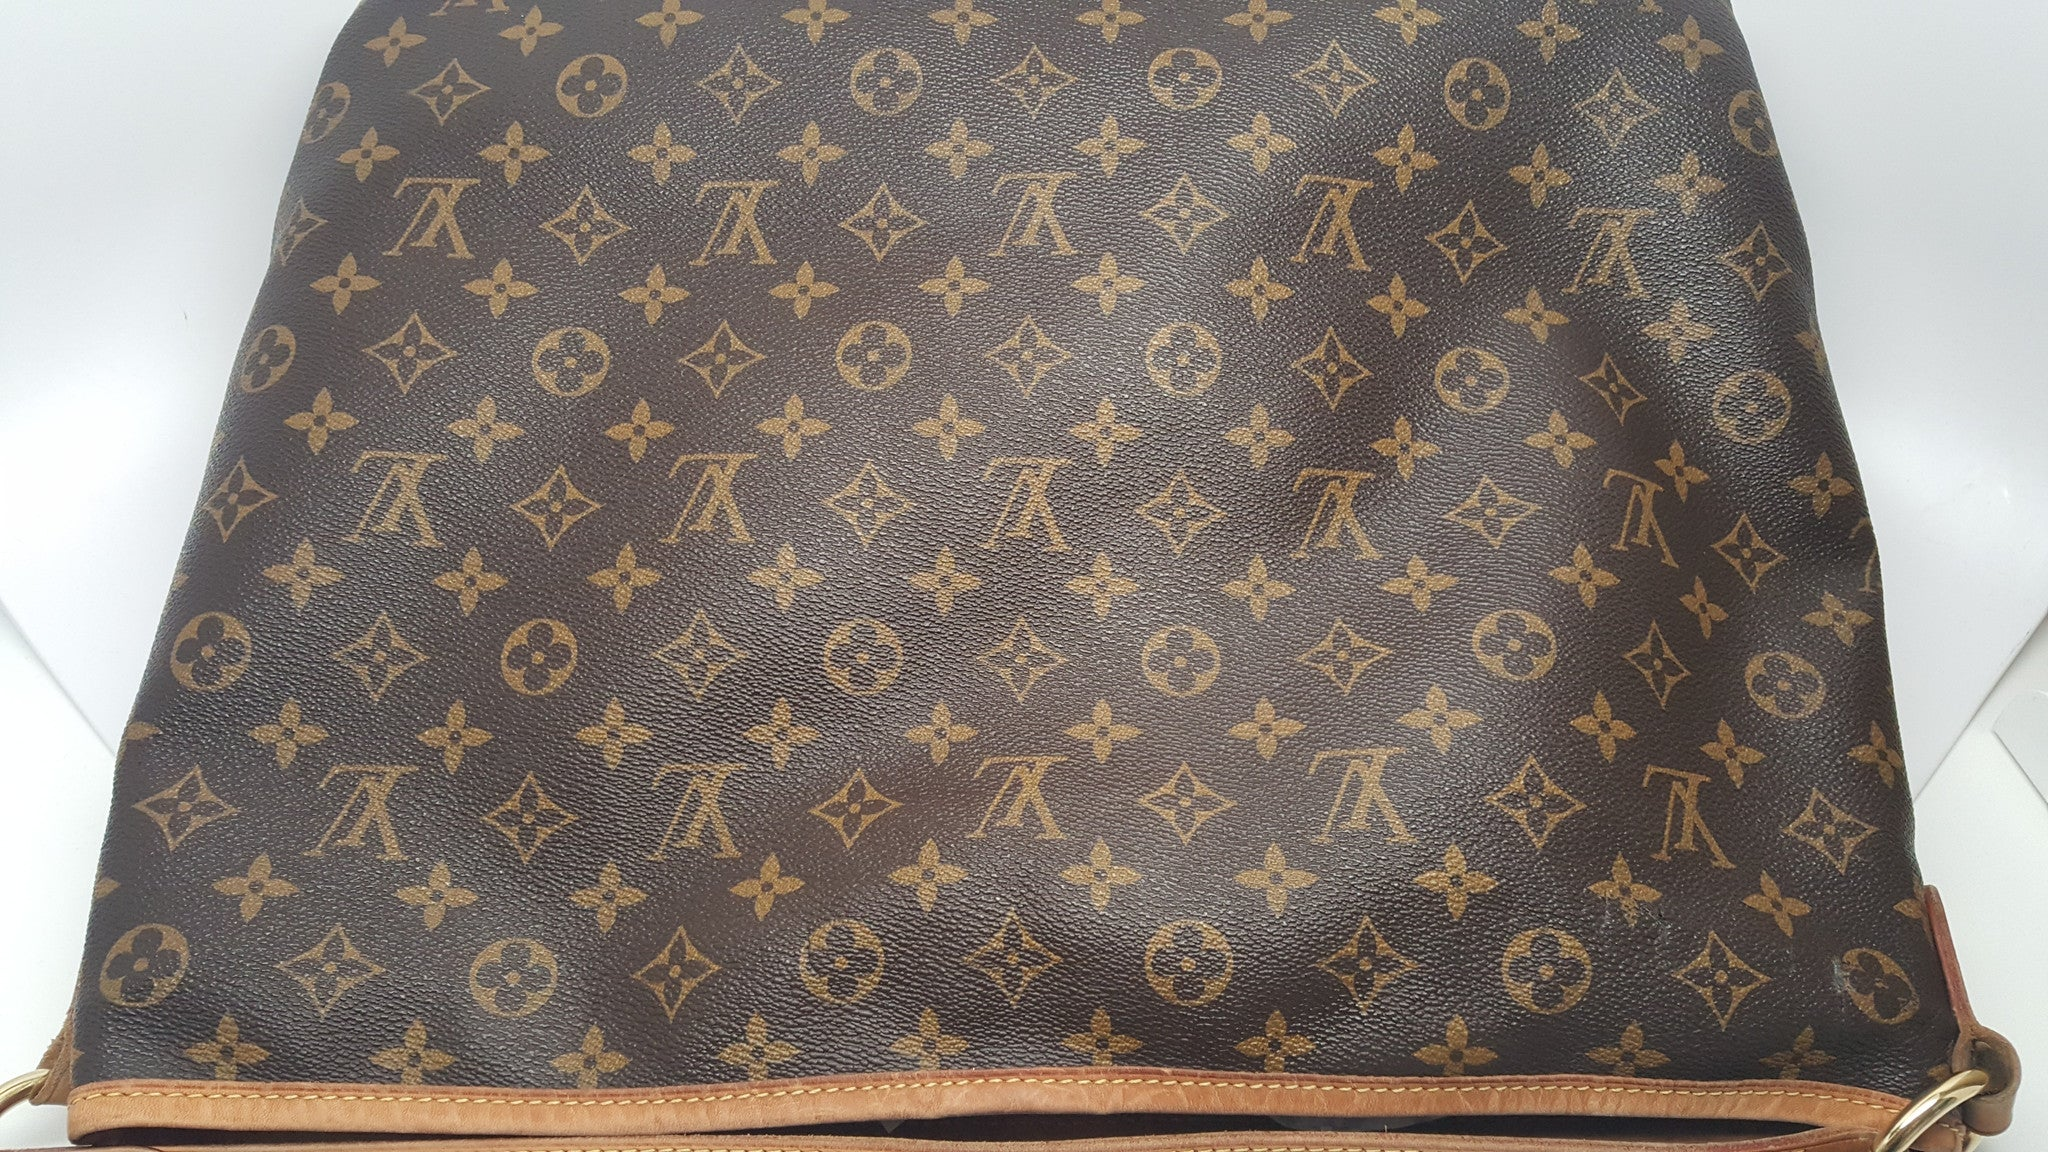 LOUIS VUITTON DELIGHTFUL MM MONOGRAM SHOULDER BAG